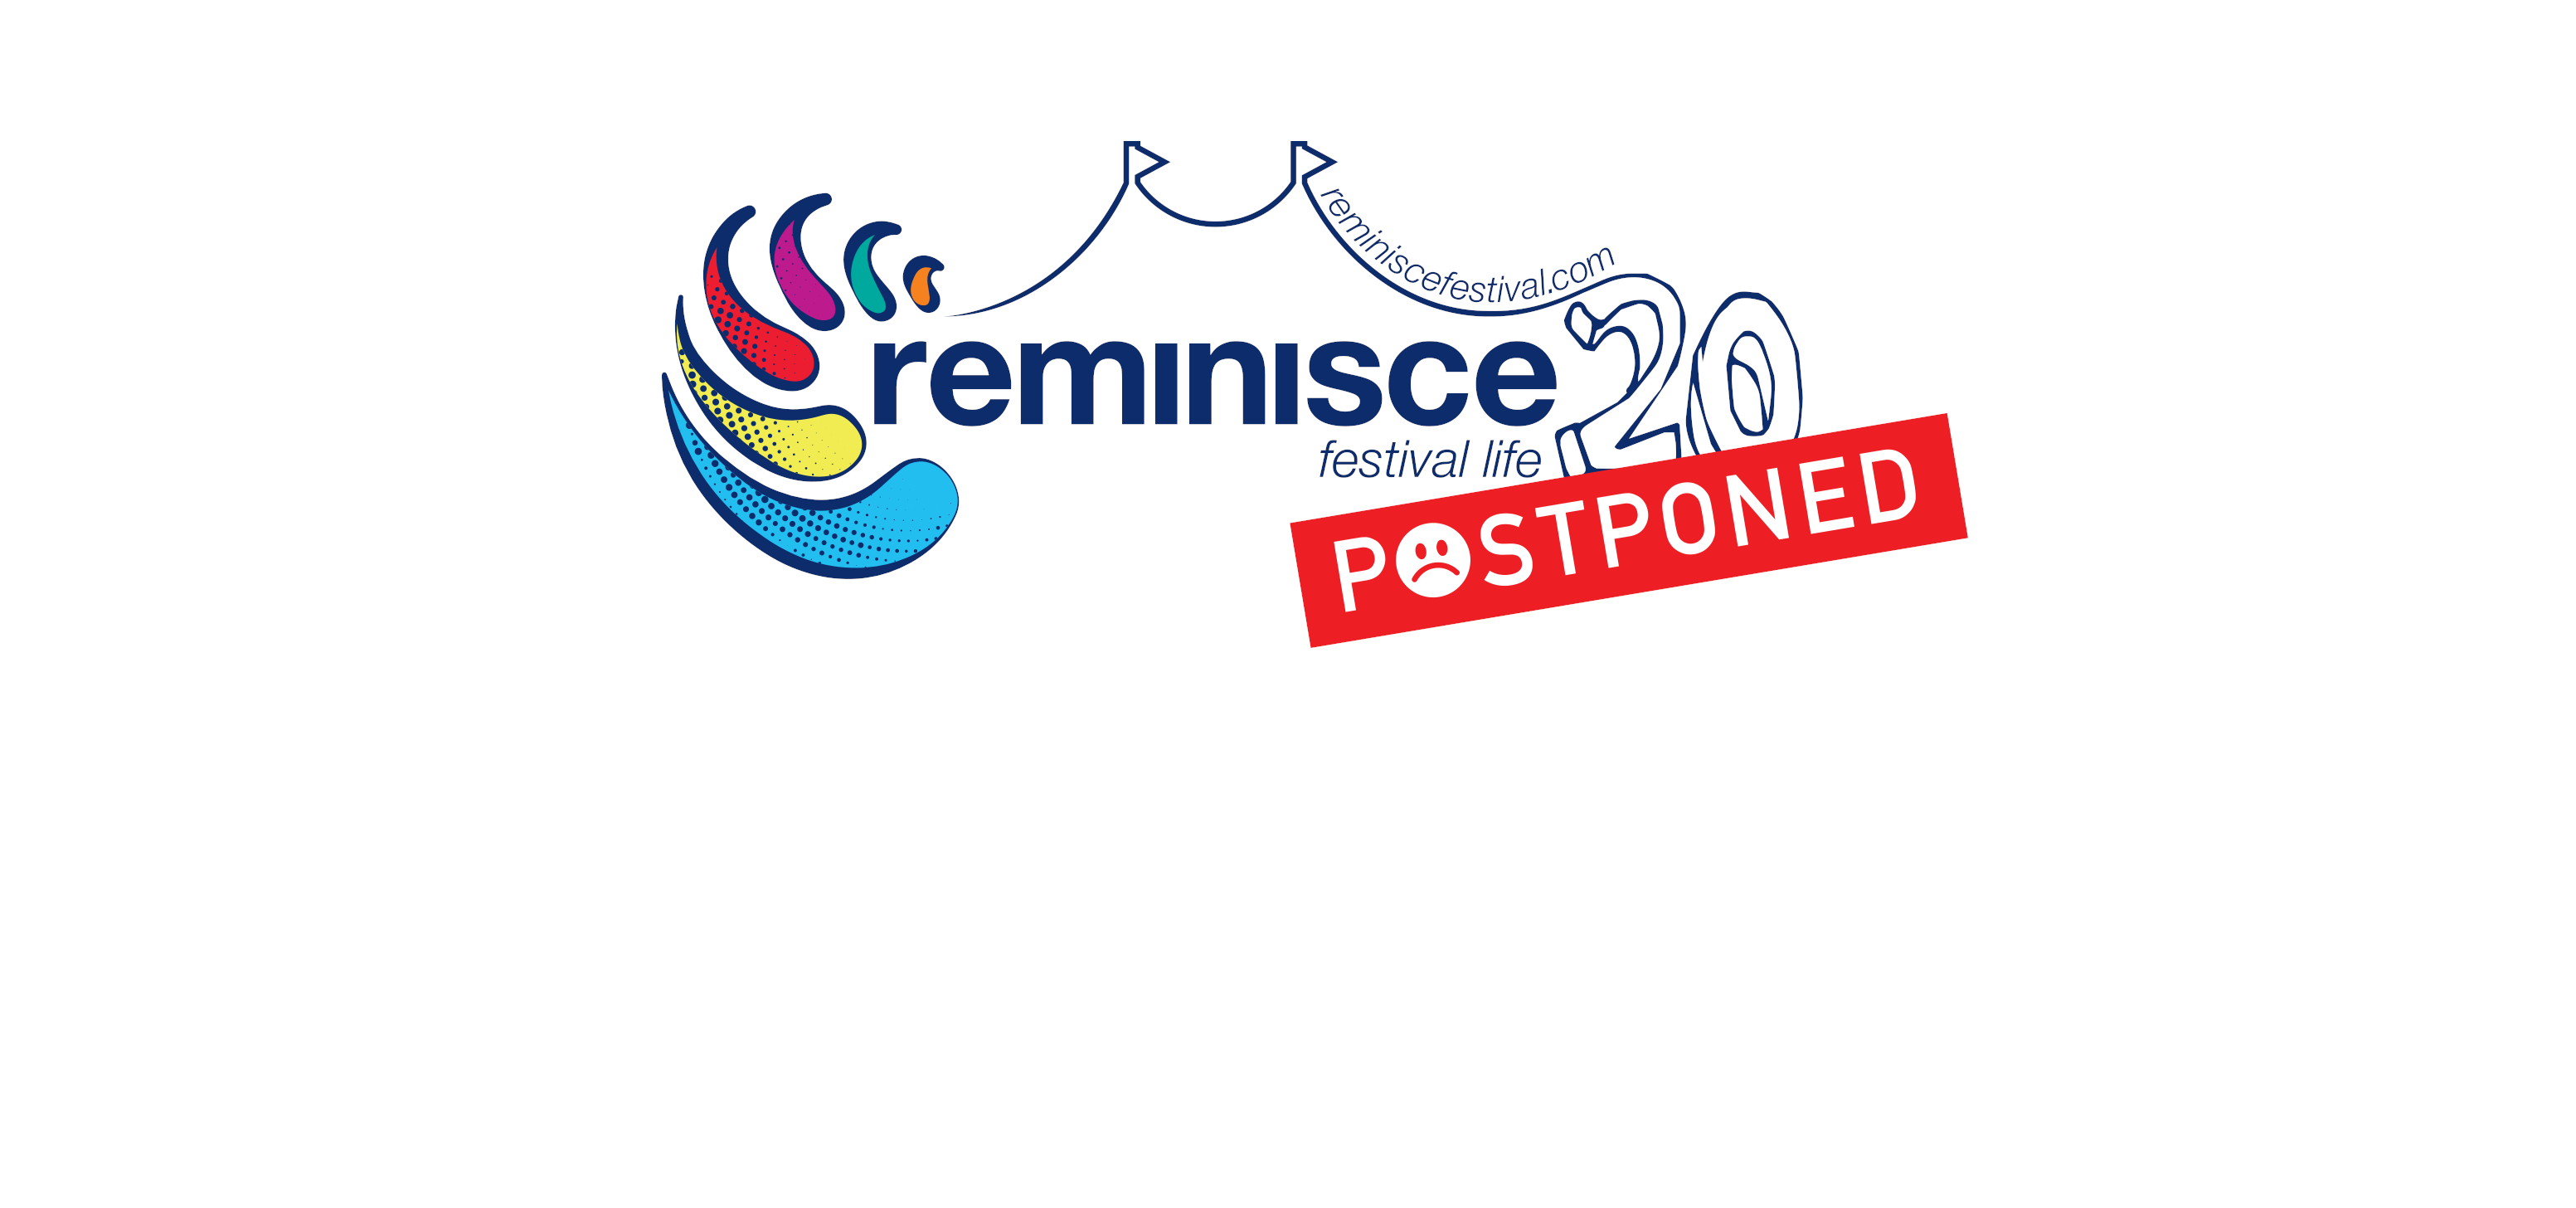 2020 Festival Postponed: Official Statement